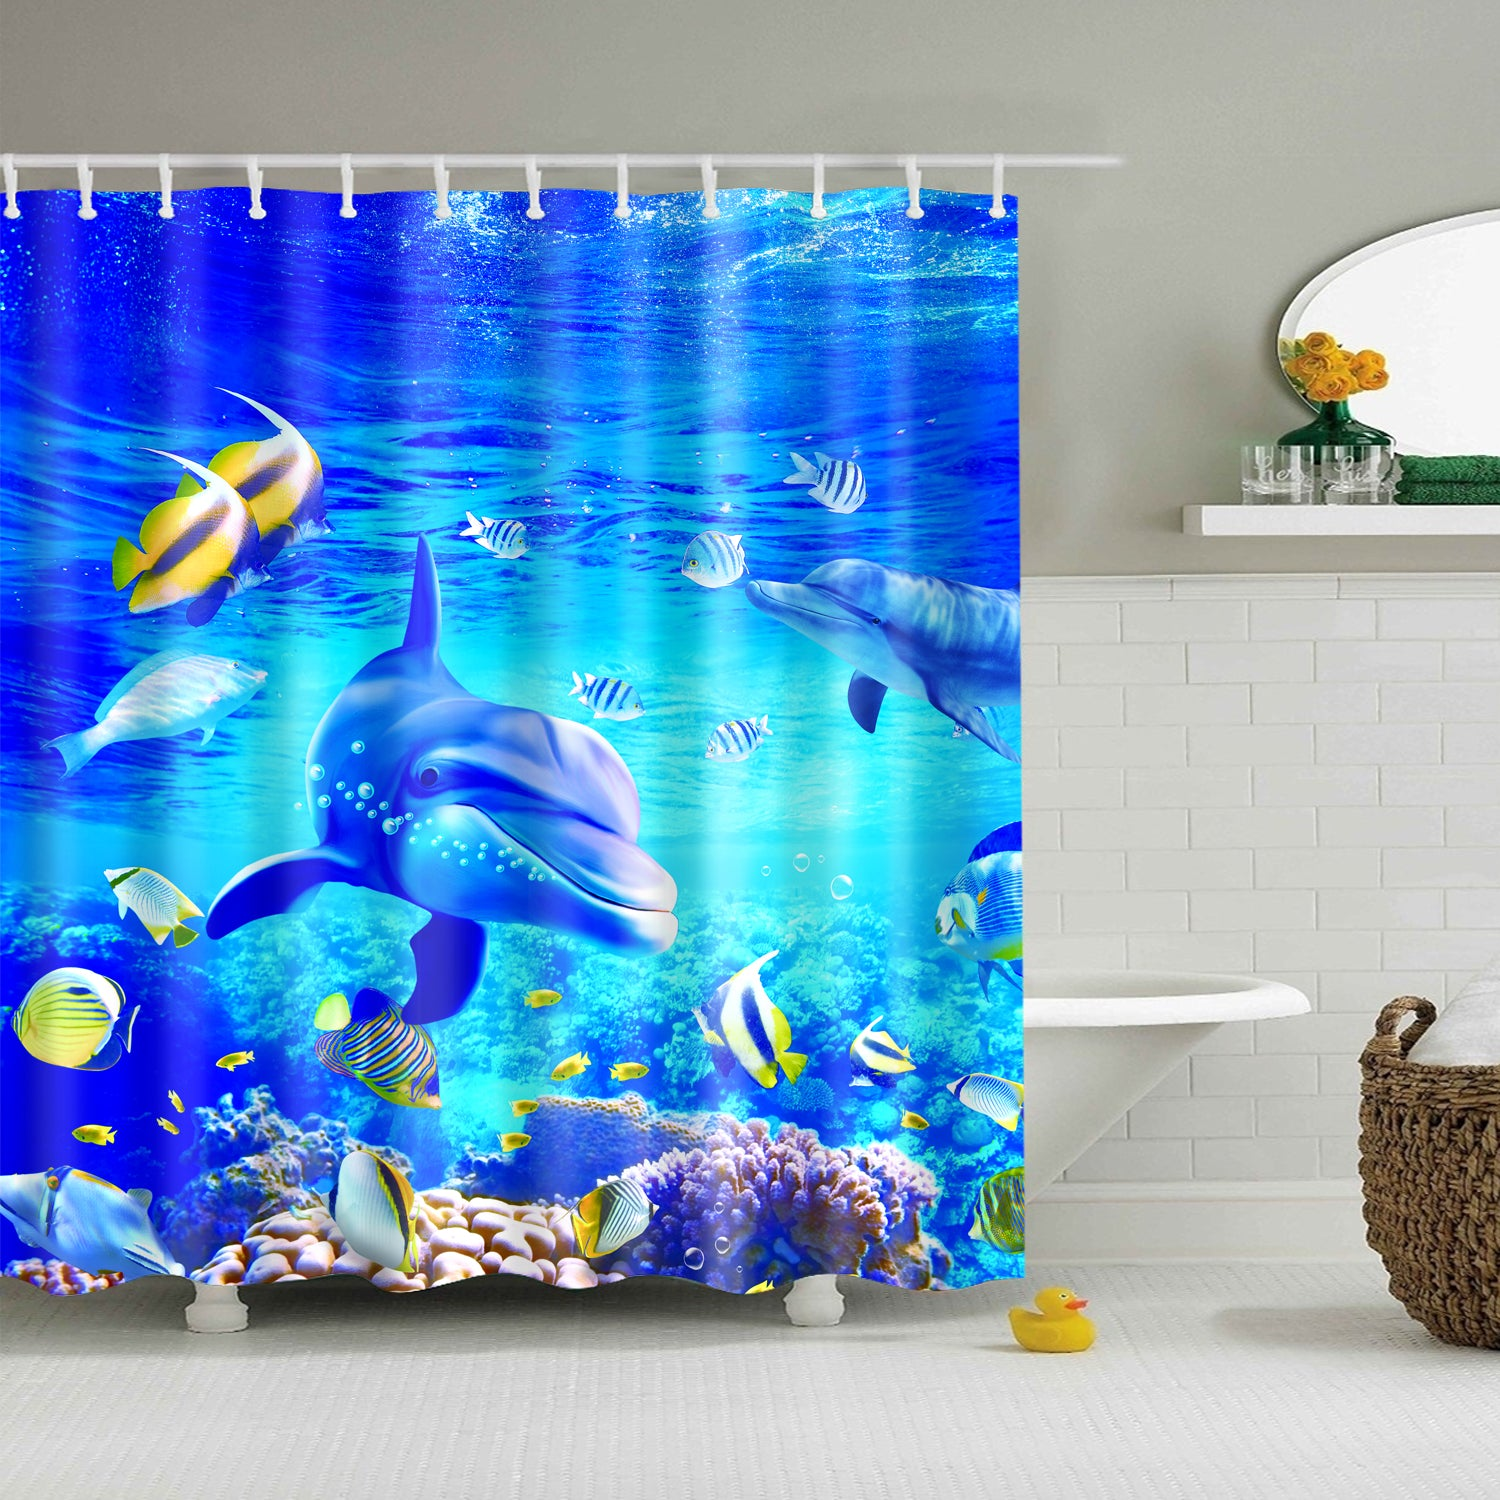 Tropical Cartoon Bottlenose Dolphin Shower Curtain Bathroom Decor